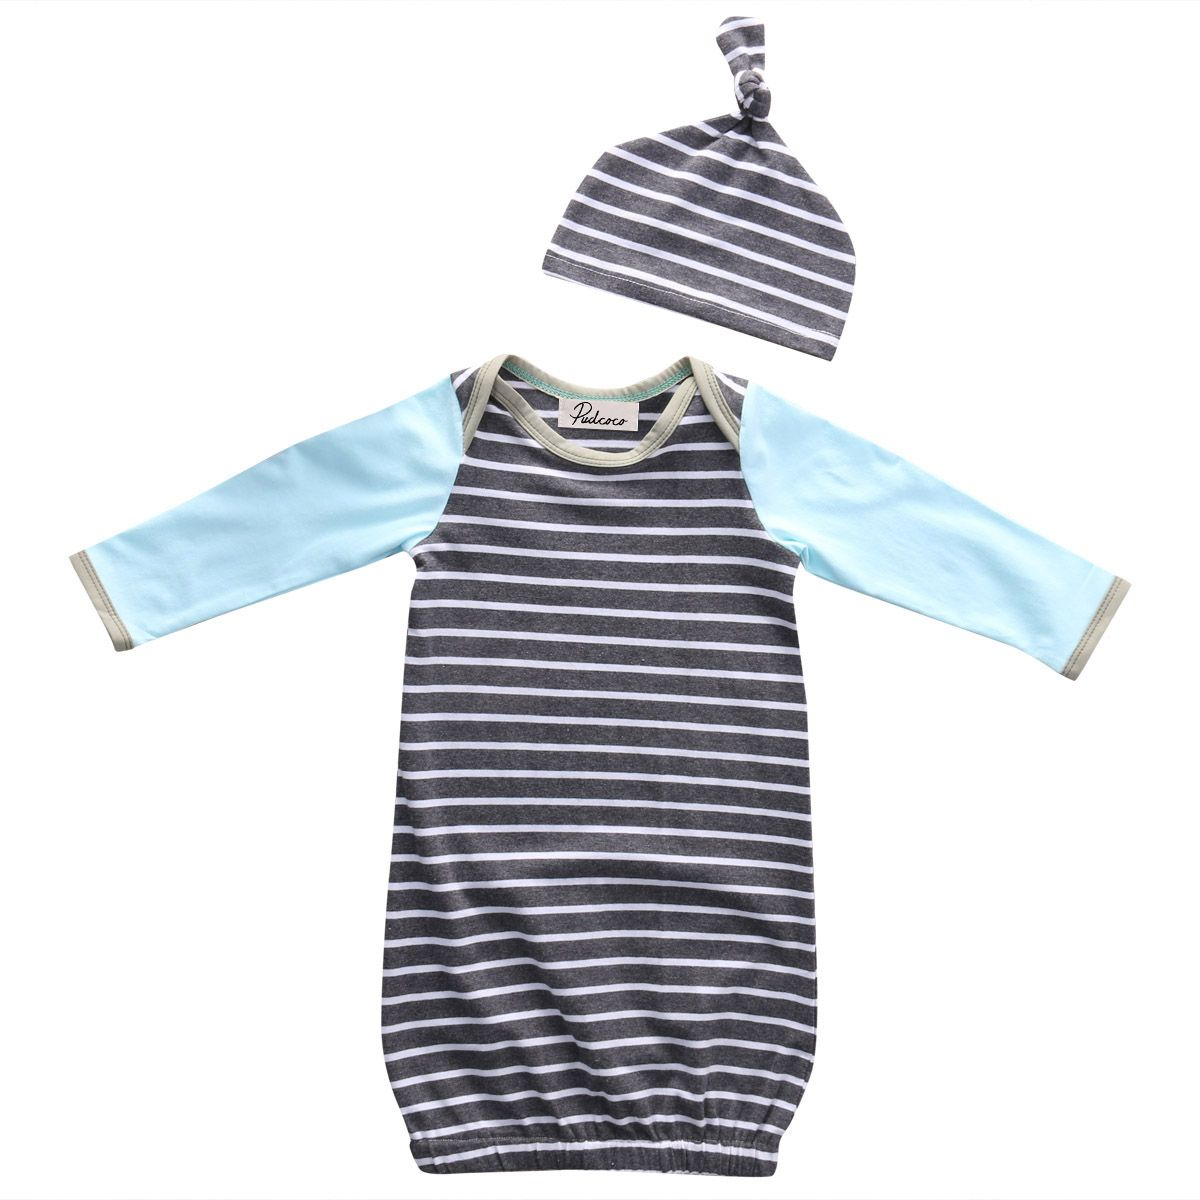 d0bb87a085 2017 pudcoco Newborn Infant Toddler Baby Girls Boy Unisex Casual Striped Pajamas  Sleepwear Set Nightgown Hat